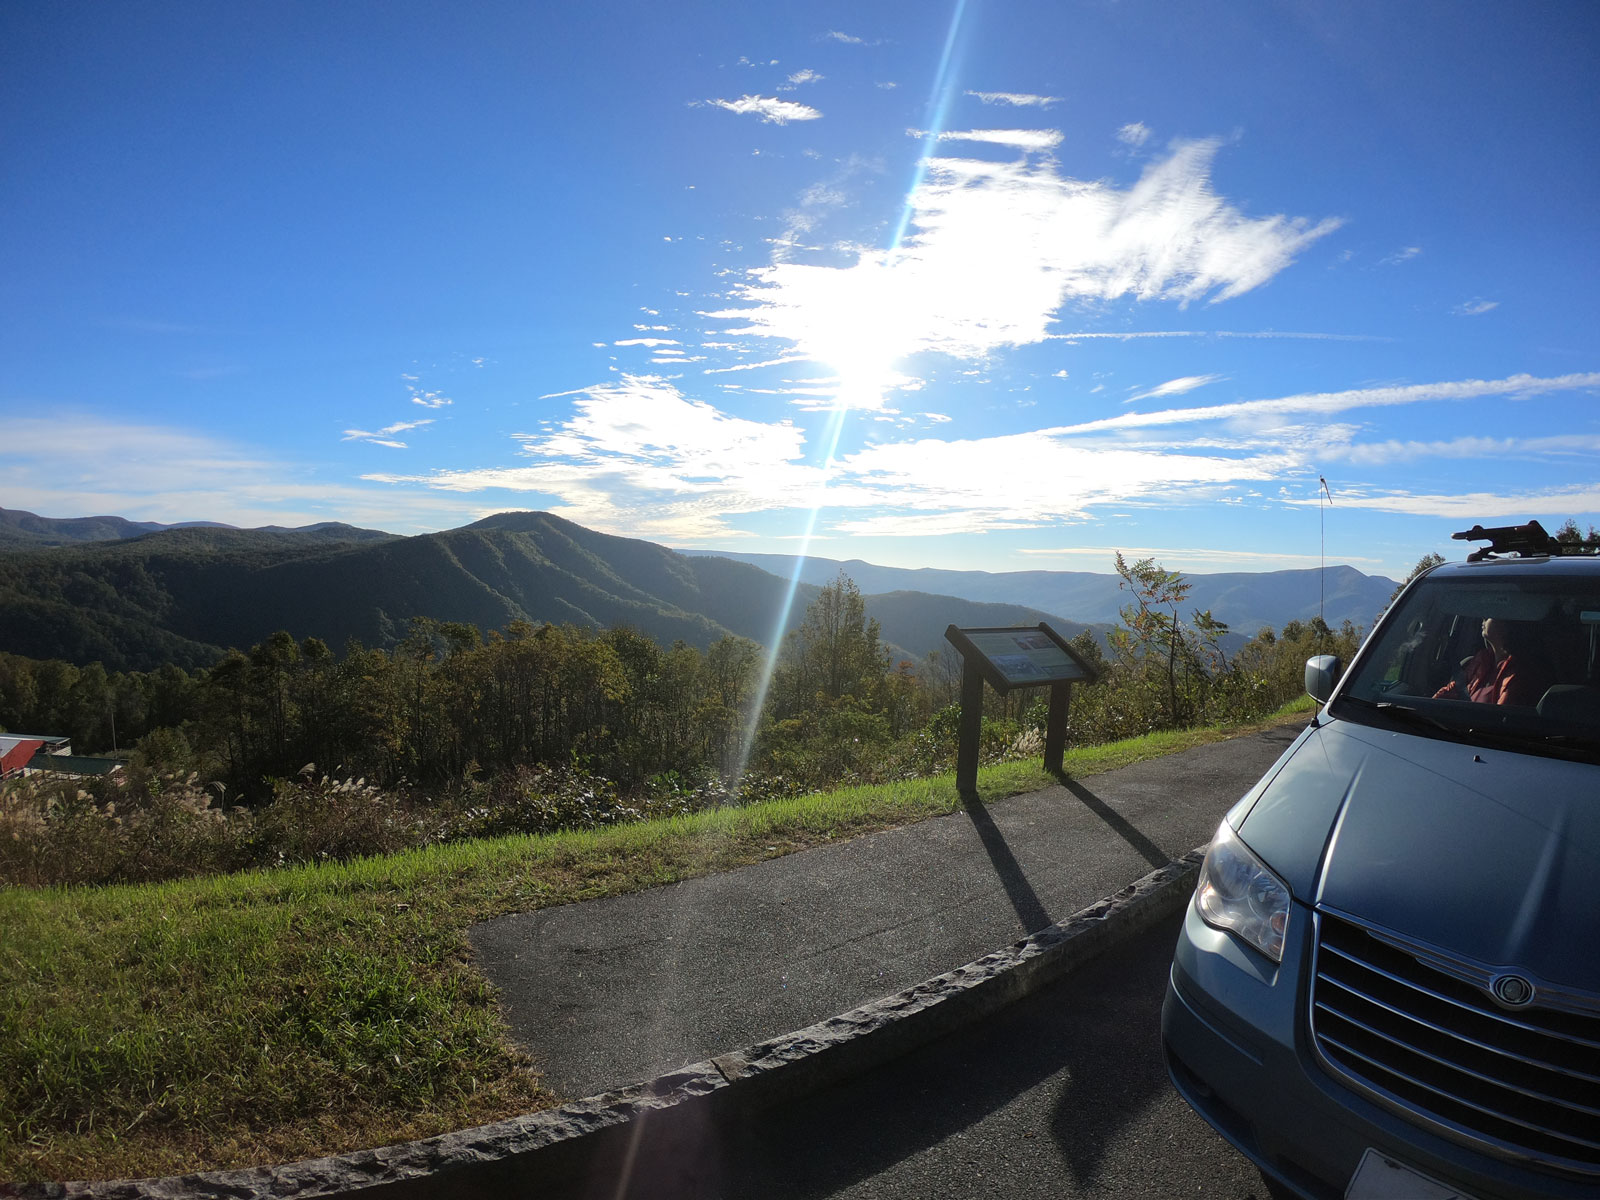 Overlooking the Blue Ridge Mountains from the Blue Ridge Parkway